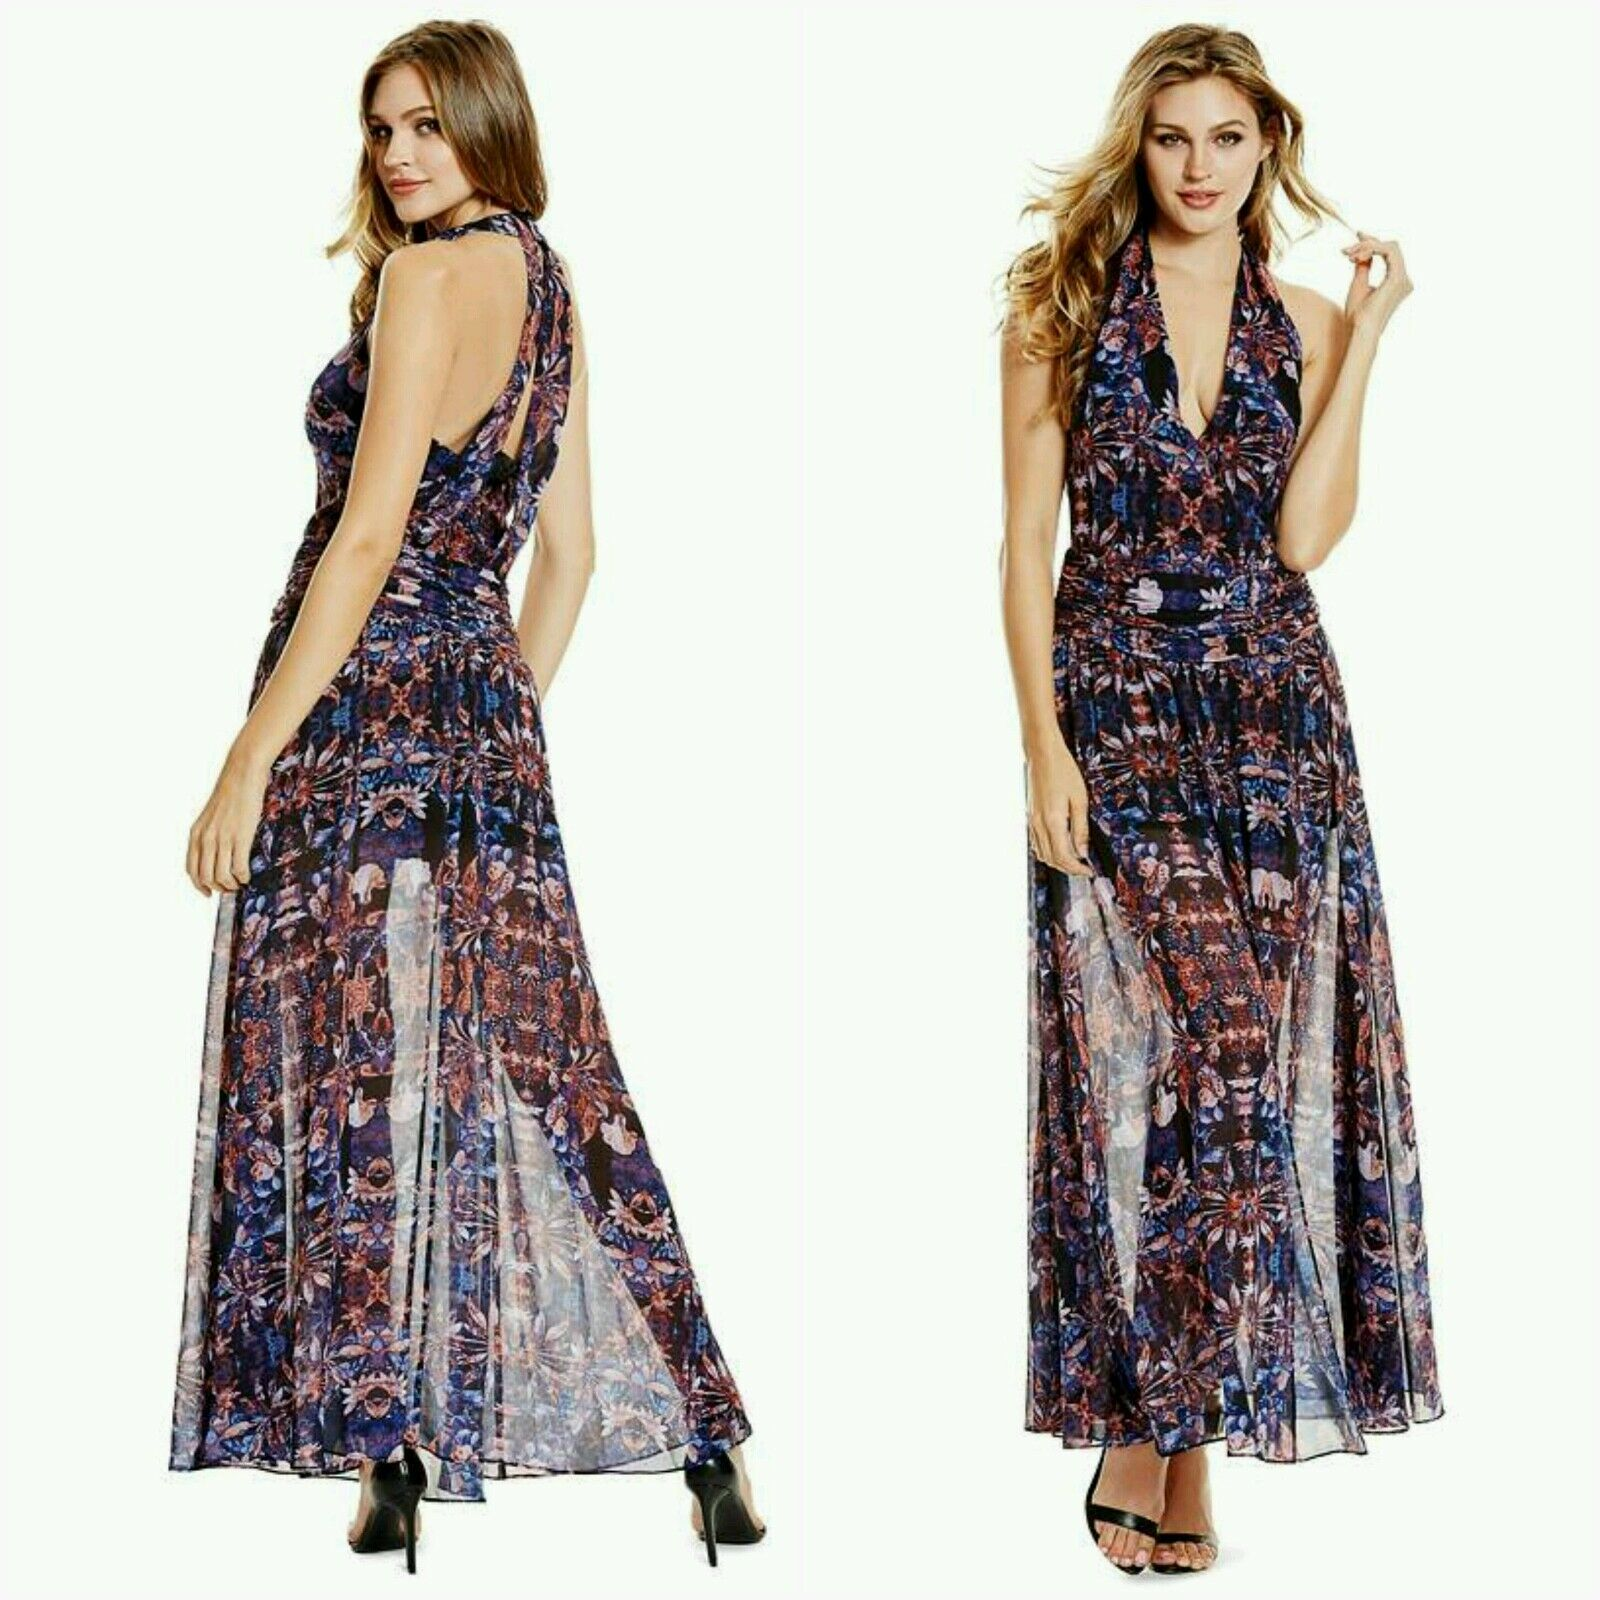 NWT GUESS BY MARCIANO Rhapsody Maxi Dress SIZE S